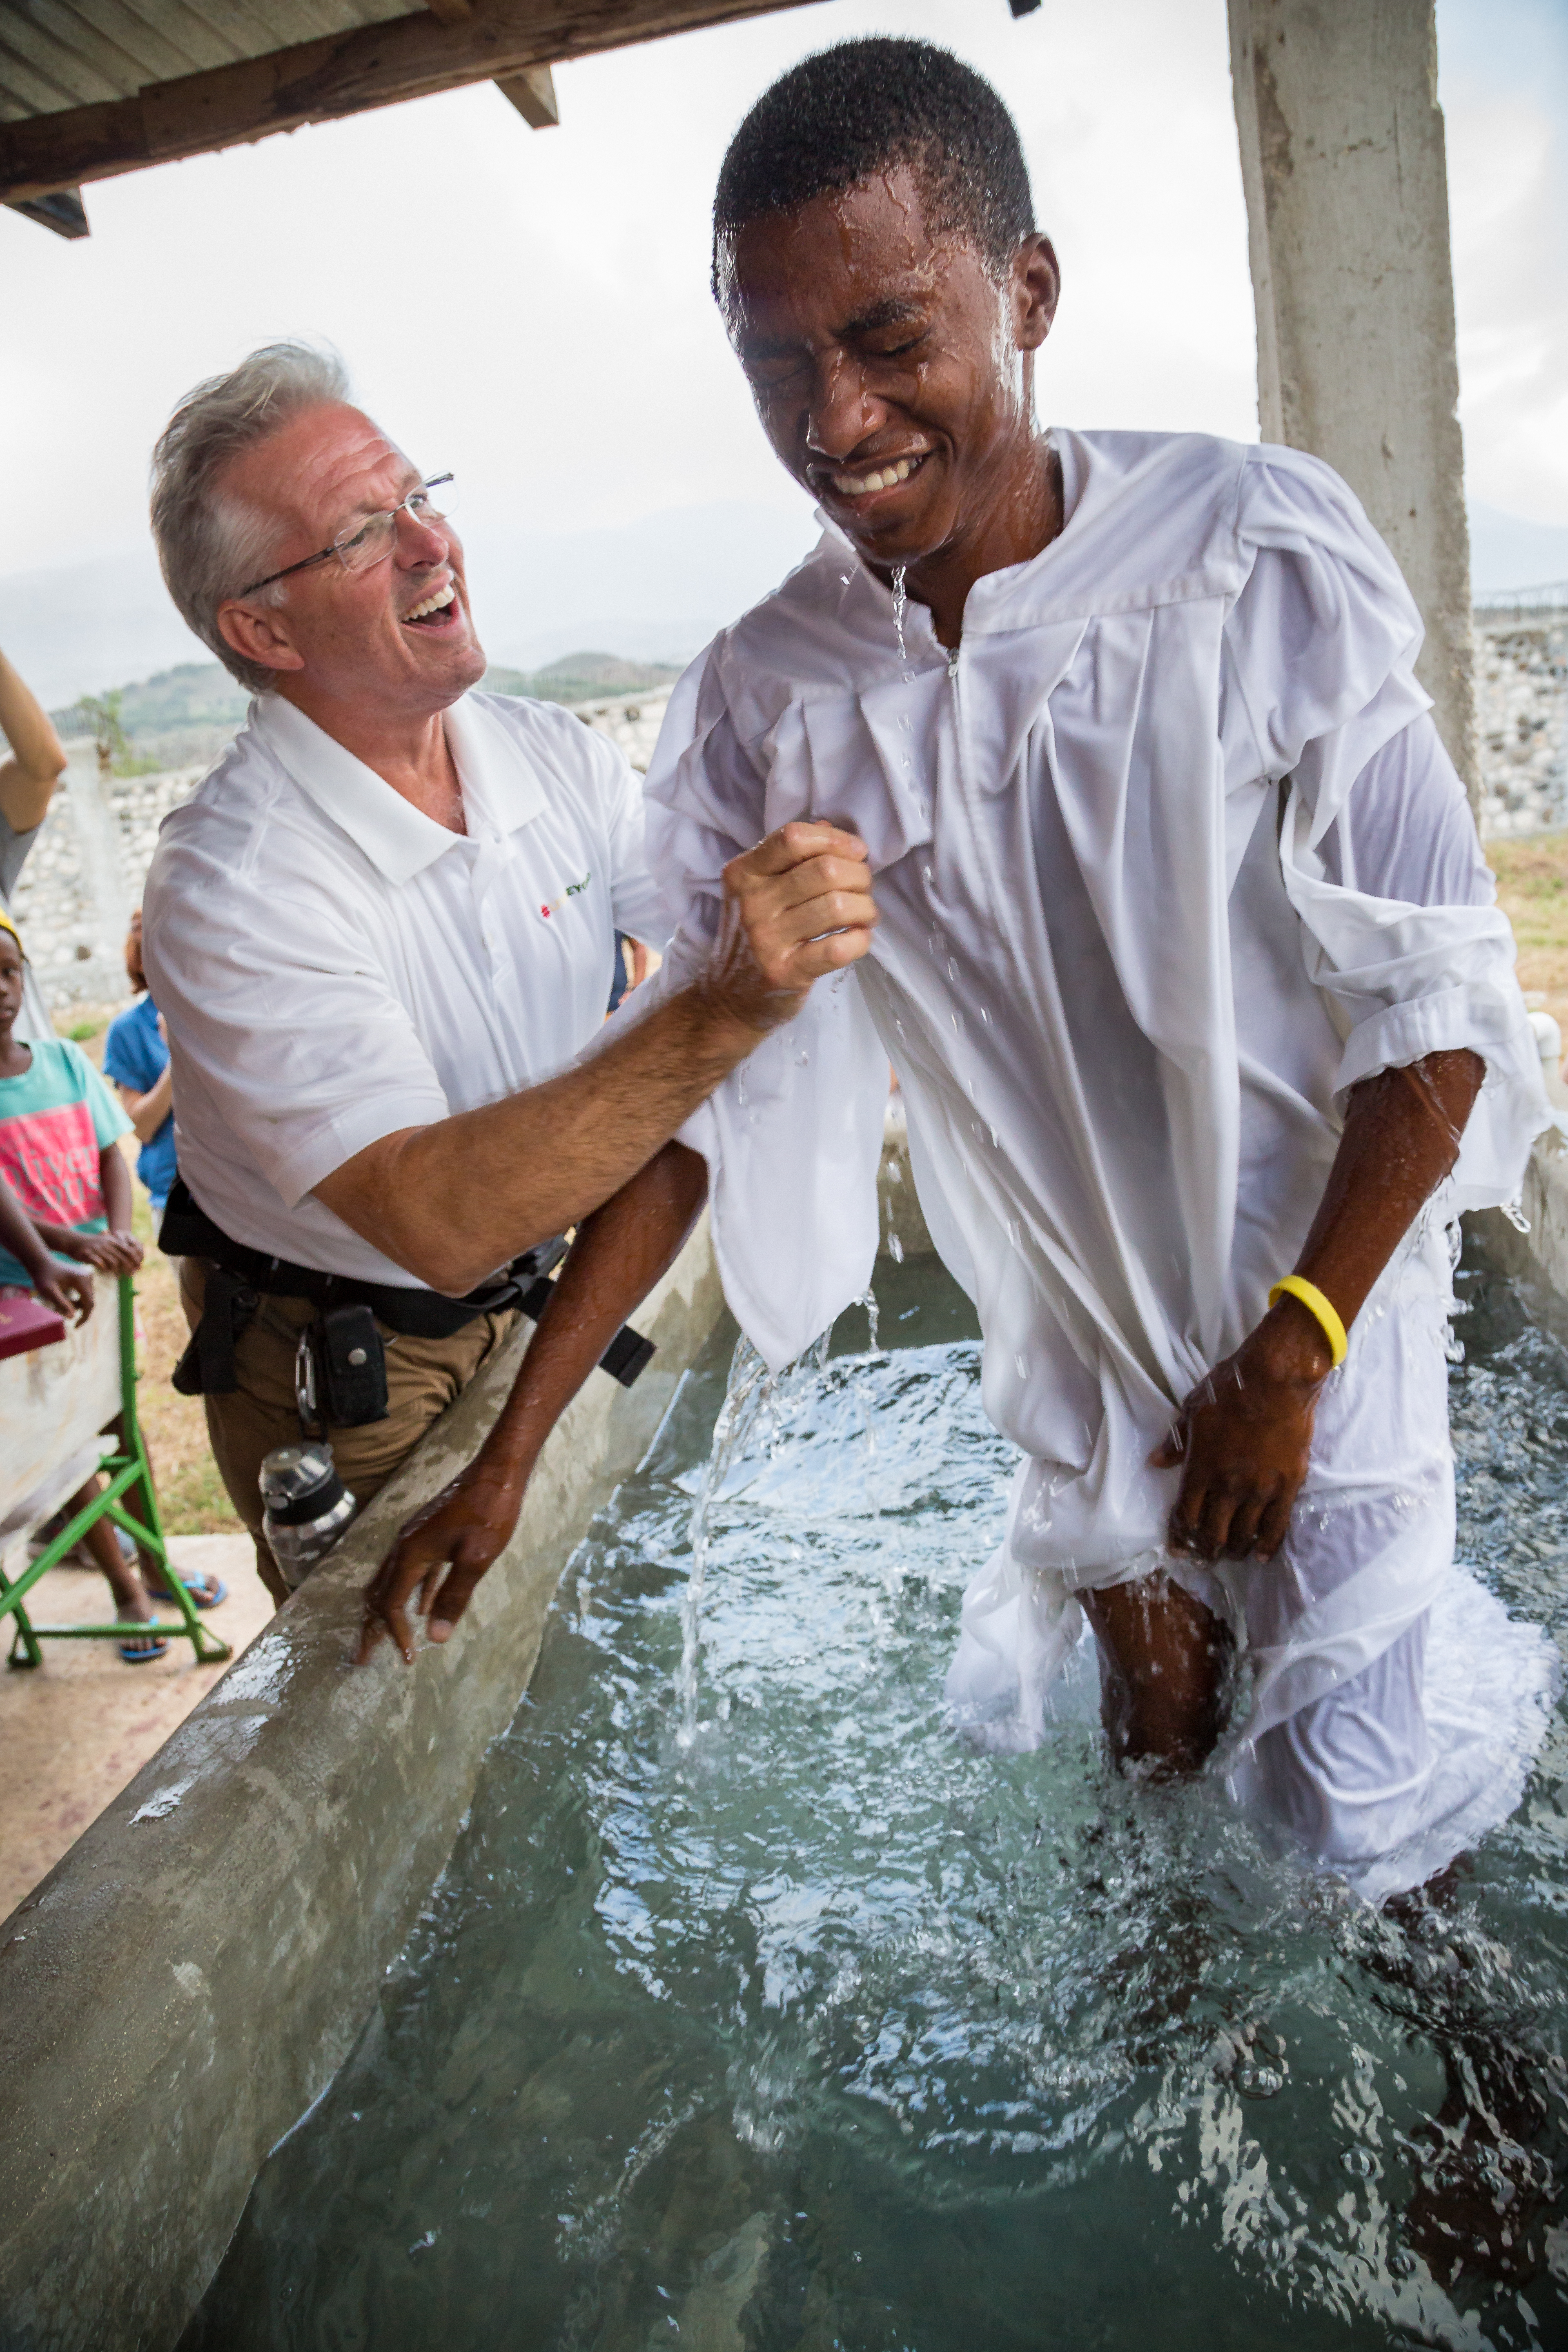 This young man was part of a whole family that was baptized in one day. And Haitians throw a party when there's a baptism! Being able to capture him right after coming up out of the water, and see it still washing over him, was really neat.